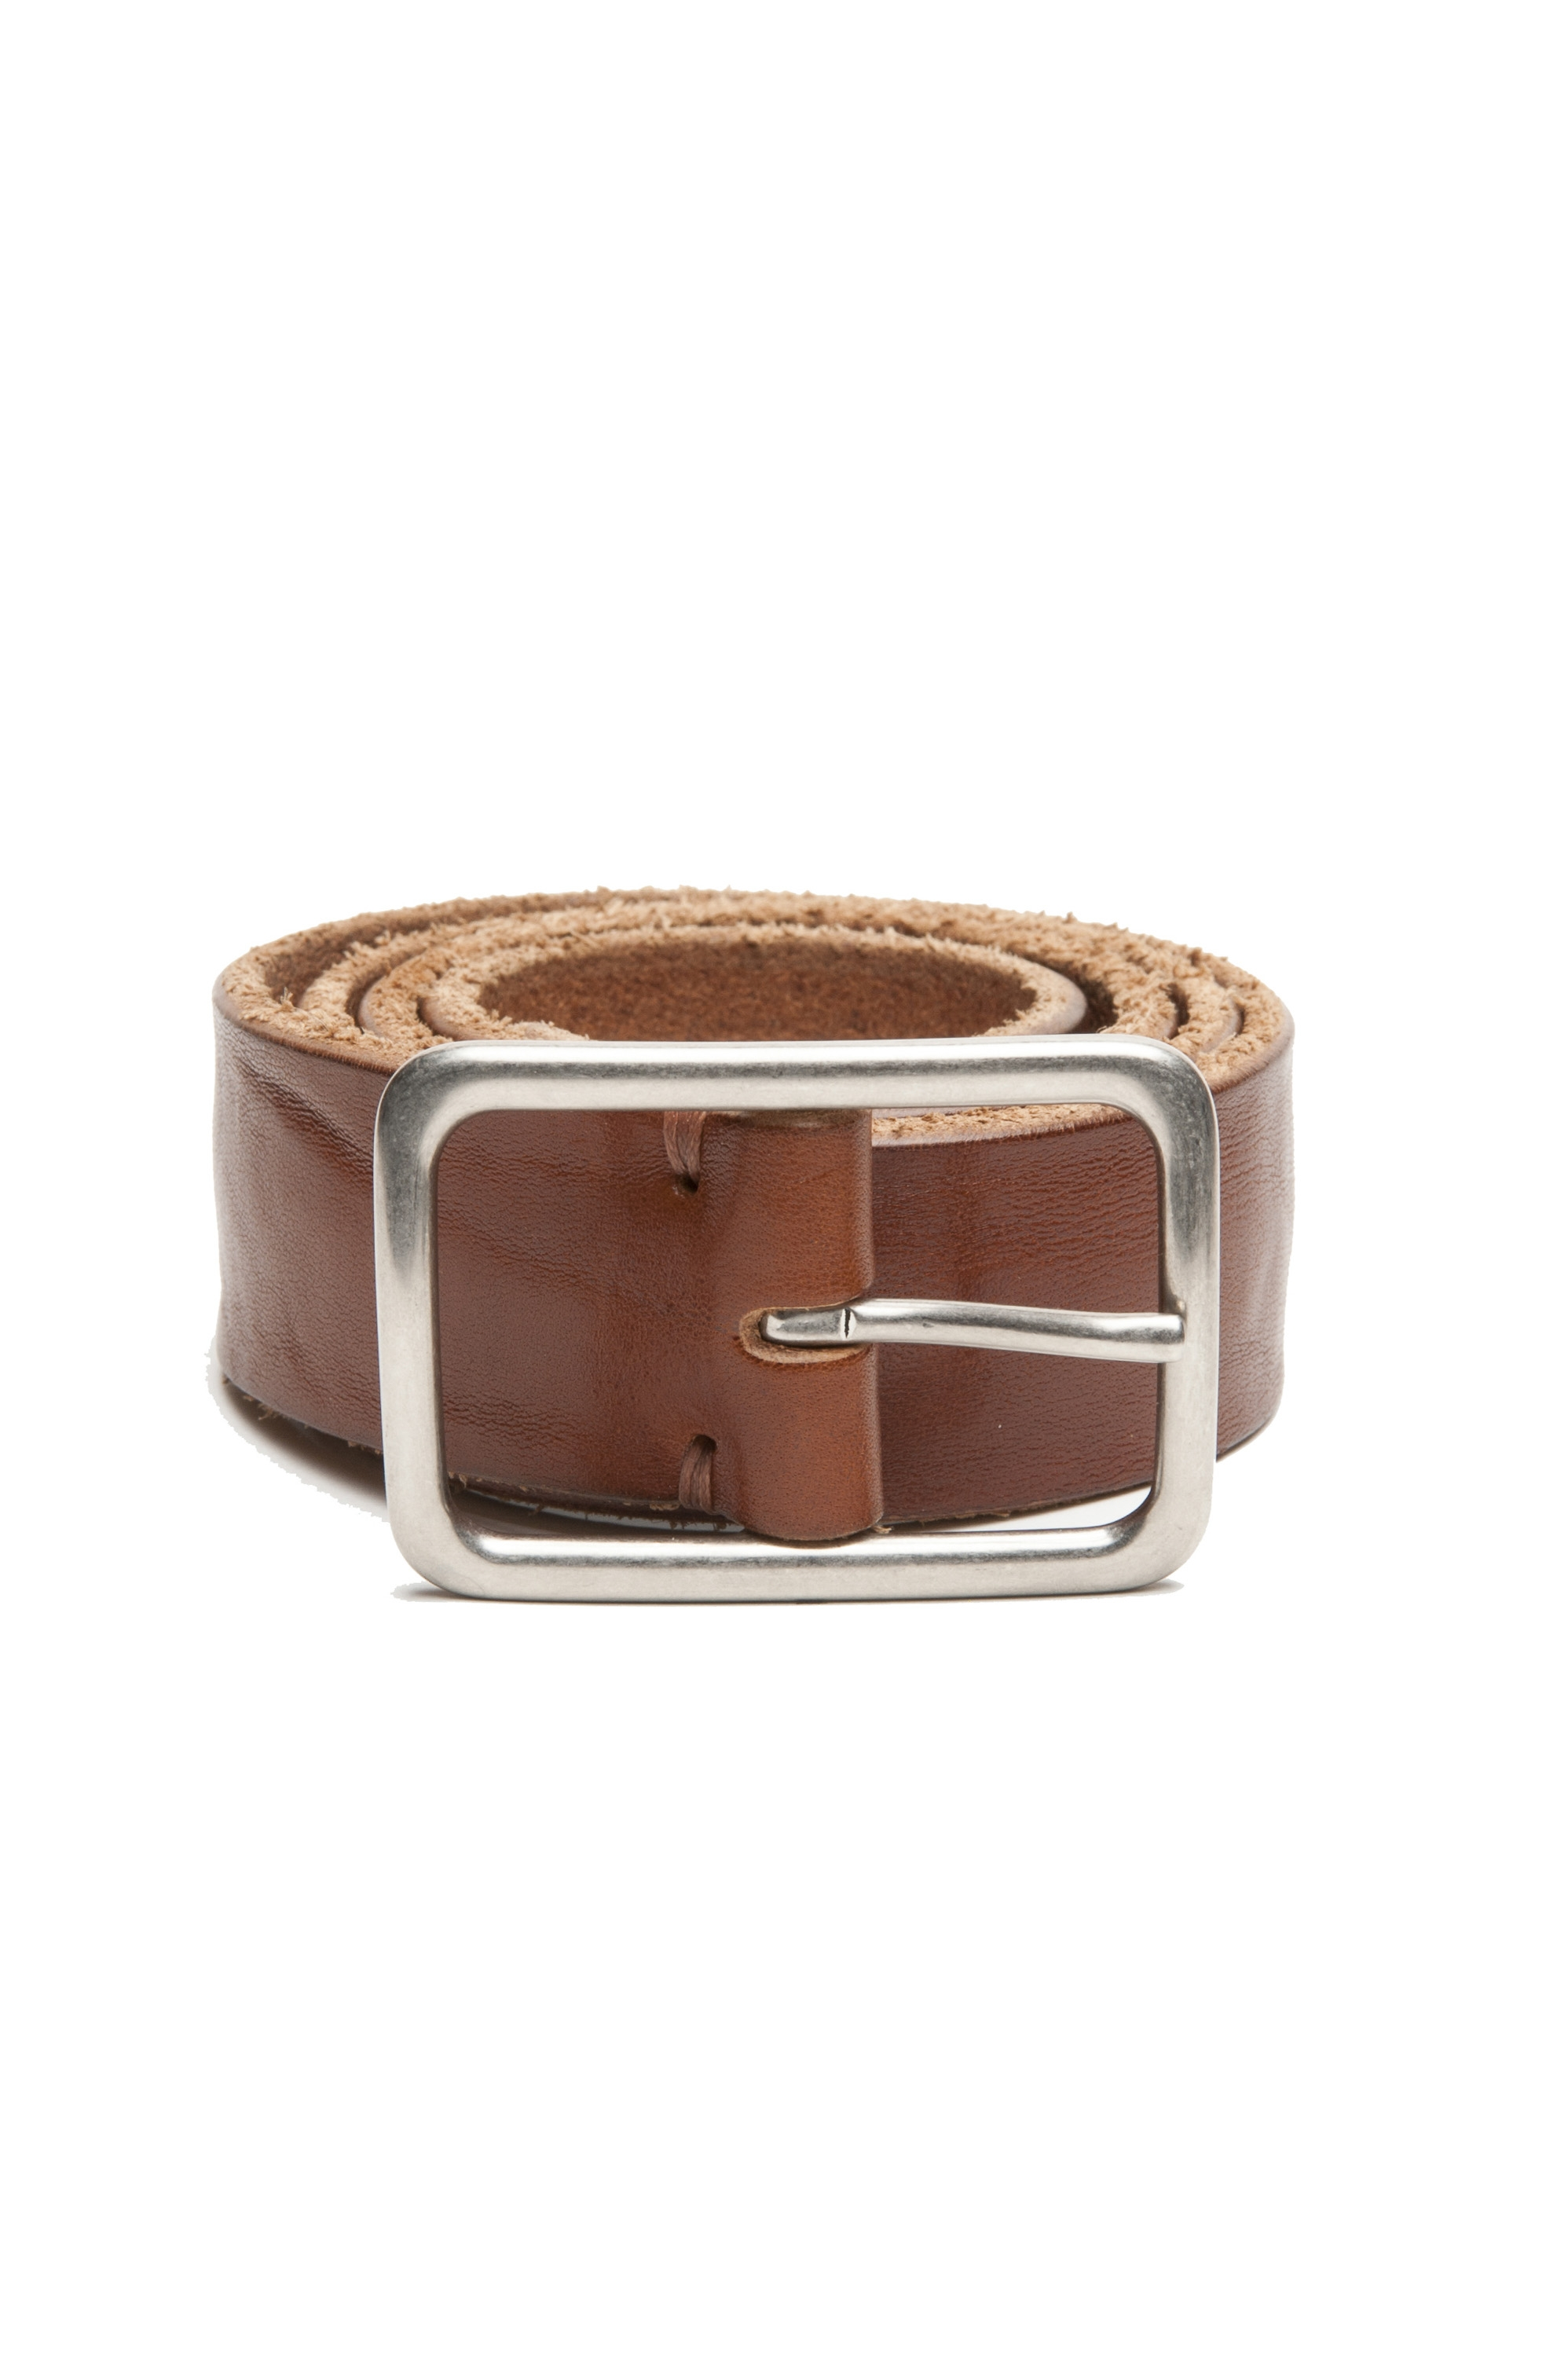 SBU 02816_2020SS Buff bullhide leather belt 1.4 inches cuir 01